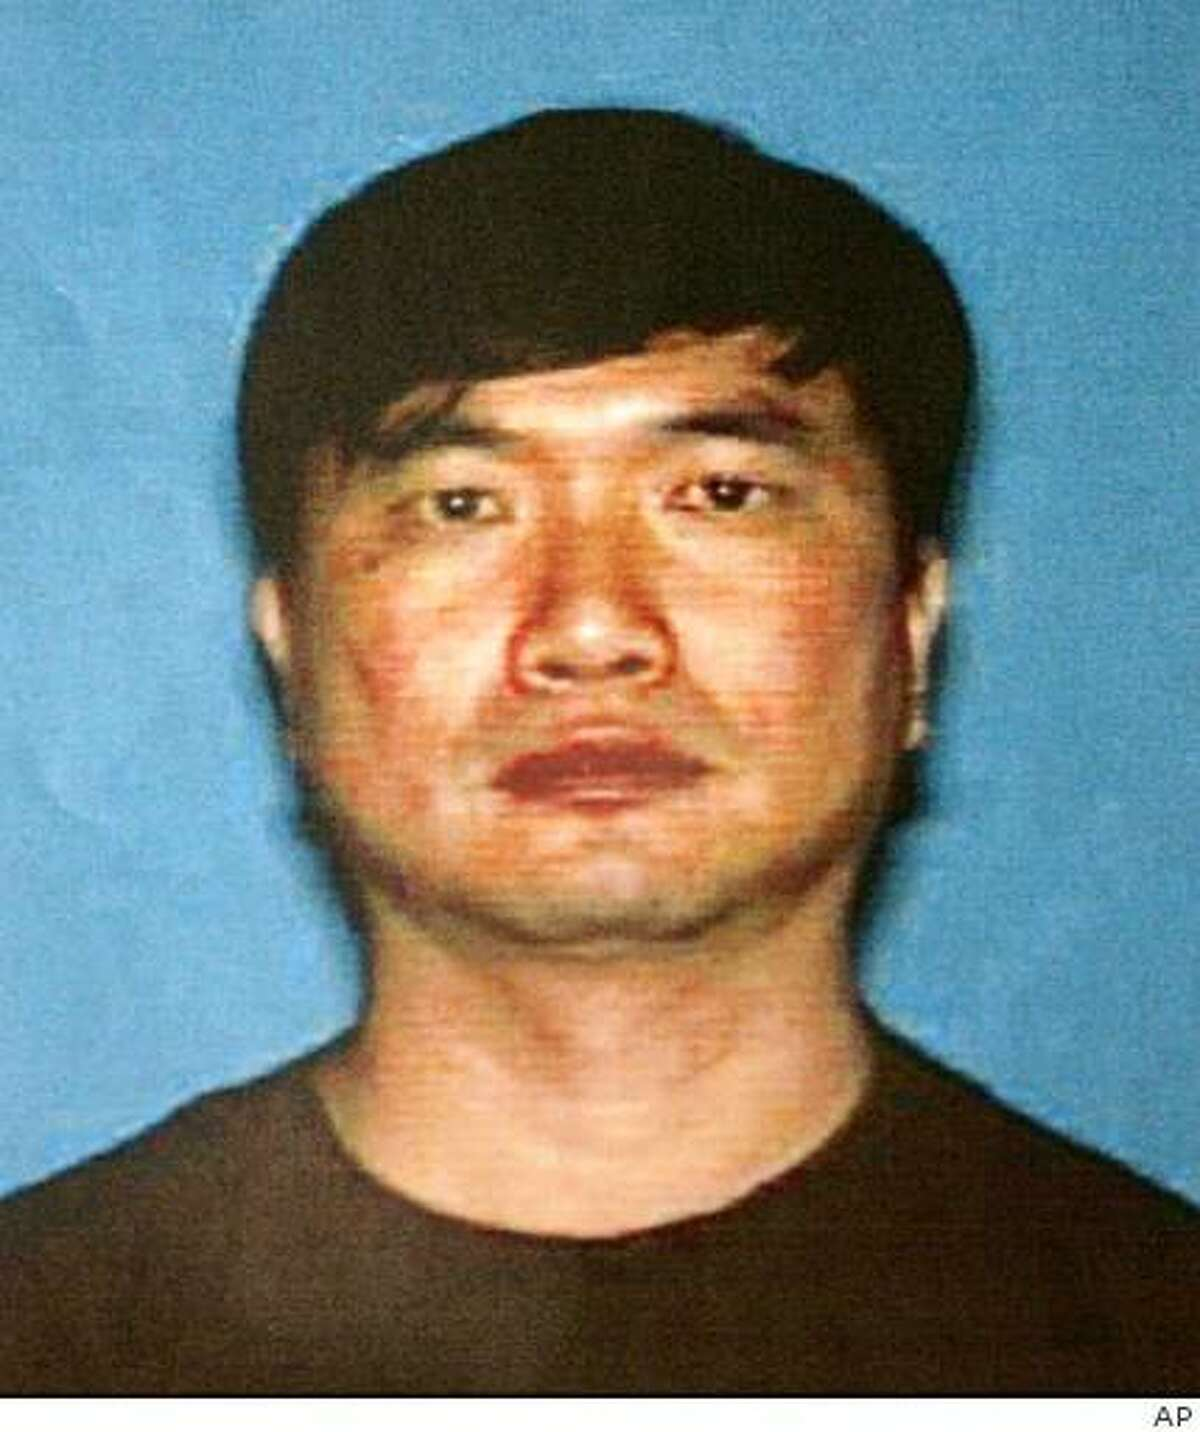 In this undated photo released by the Santa Clara Police via San Jose Mercury News, Jing Wu is seen. Police say Wu, a laid-off worker, returned to his former office in Northern California and fatally shot three people. (AP Photo/Santa Clara Police Department via San Jose Mercury News) ** MAGS OUT, NO SALES **